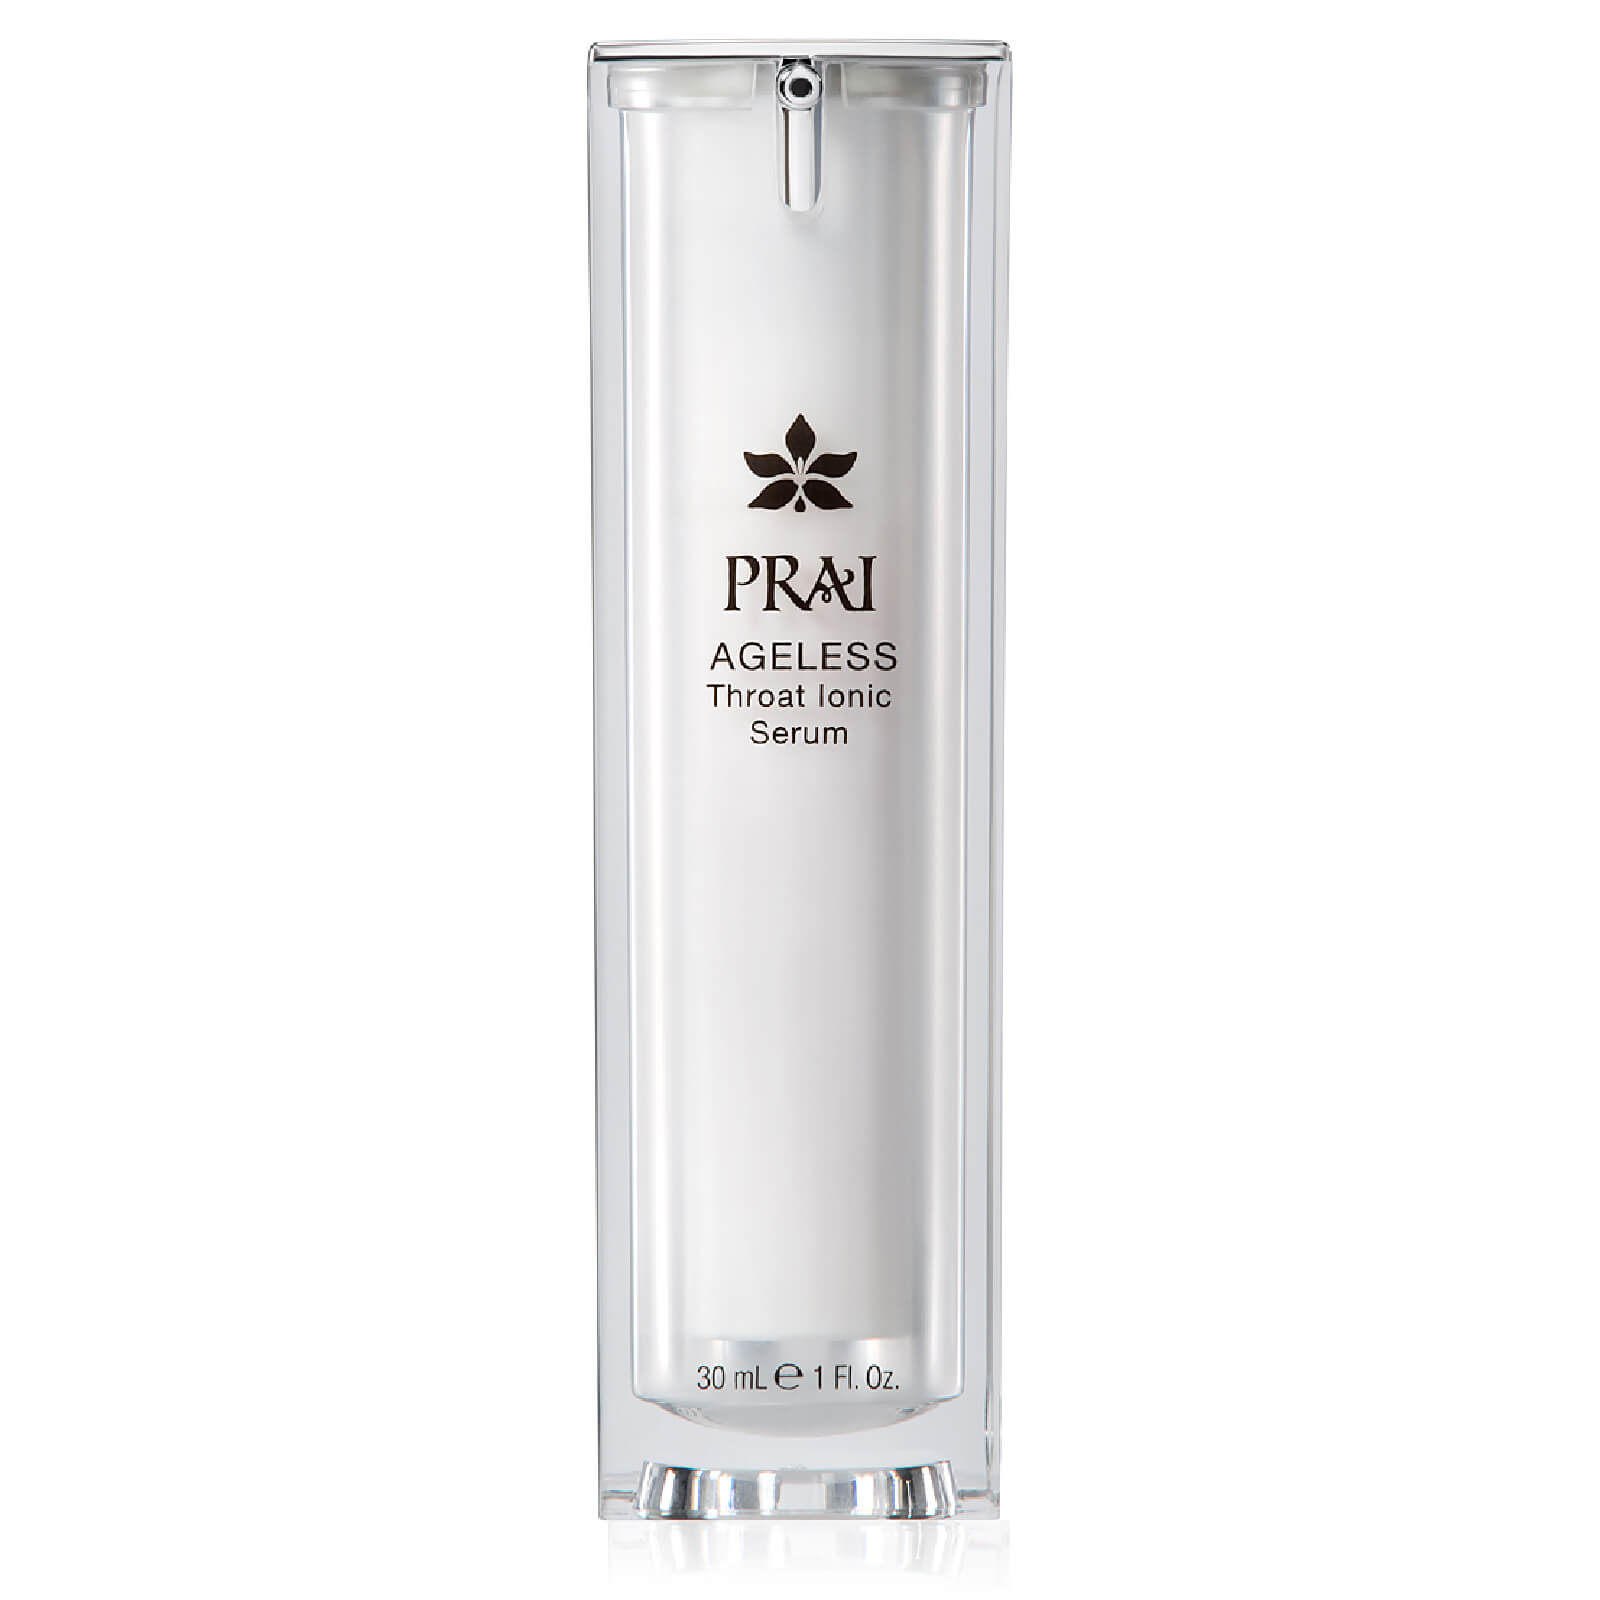 PRAI AGELESS Throat Ionic Serum 1oz